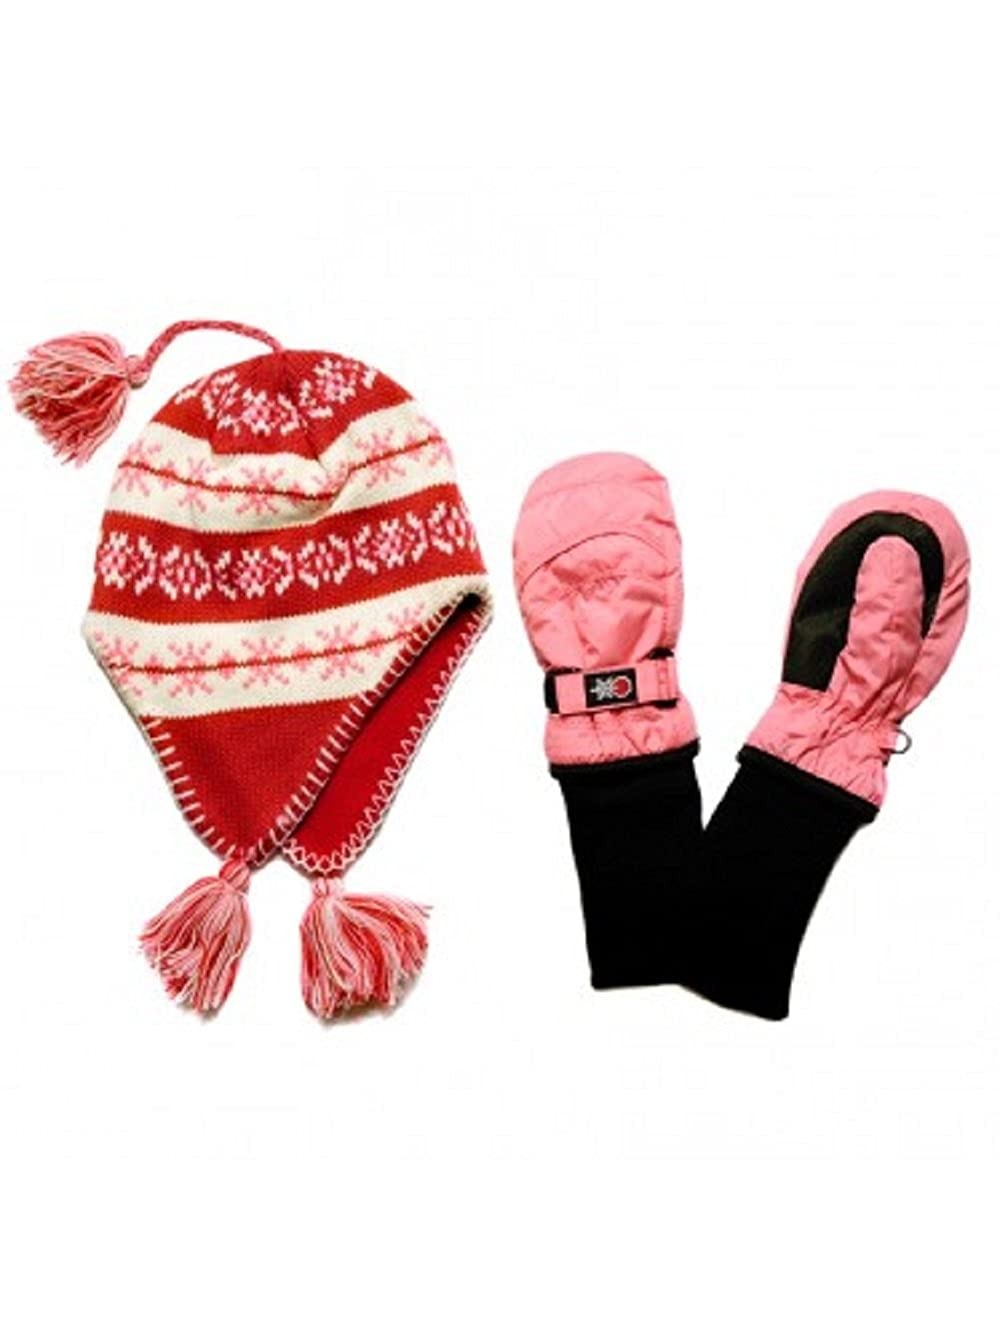 SnowStoppers Kids Nylon Mittens and Sherpa Knit Hat Sets